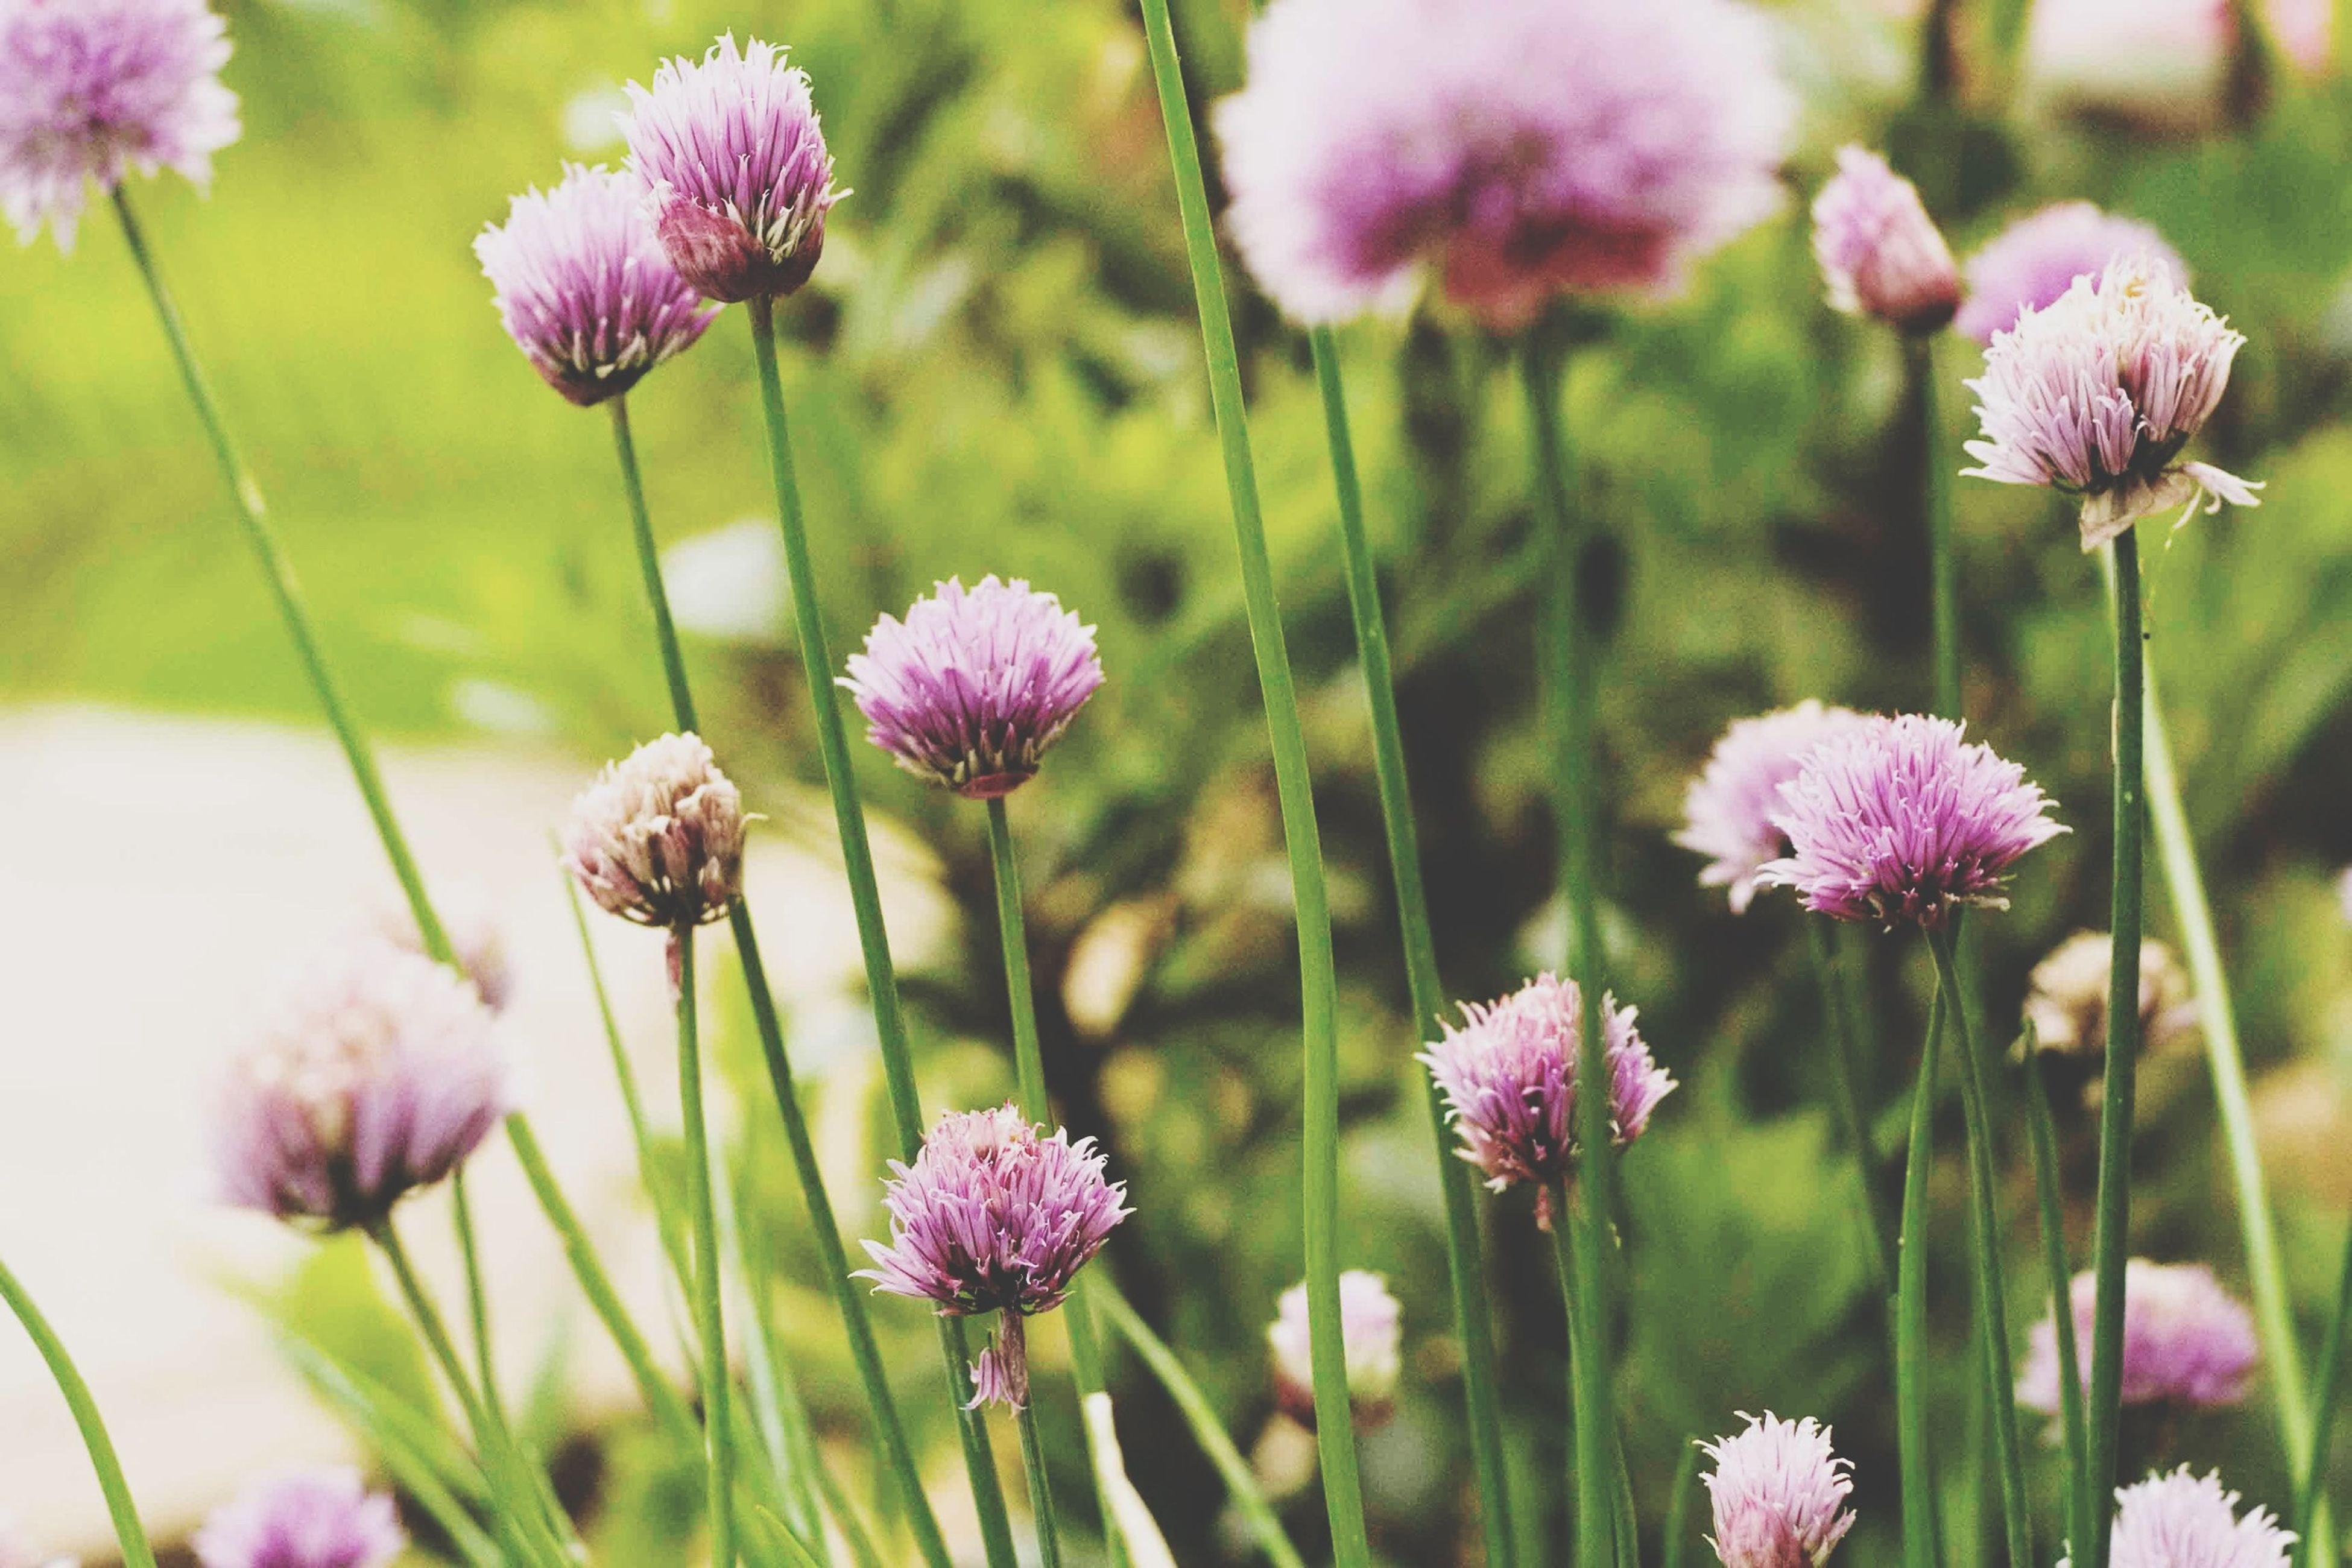 flower, freshness, fragility, growth, purple, pink color, beauty in nature, focus on foreground, nature, close-up, plant, stem, flower head, petal, blooming, in bloom, field, selective focus, blossom, thistle